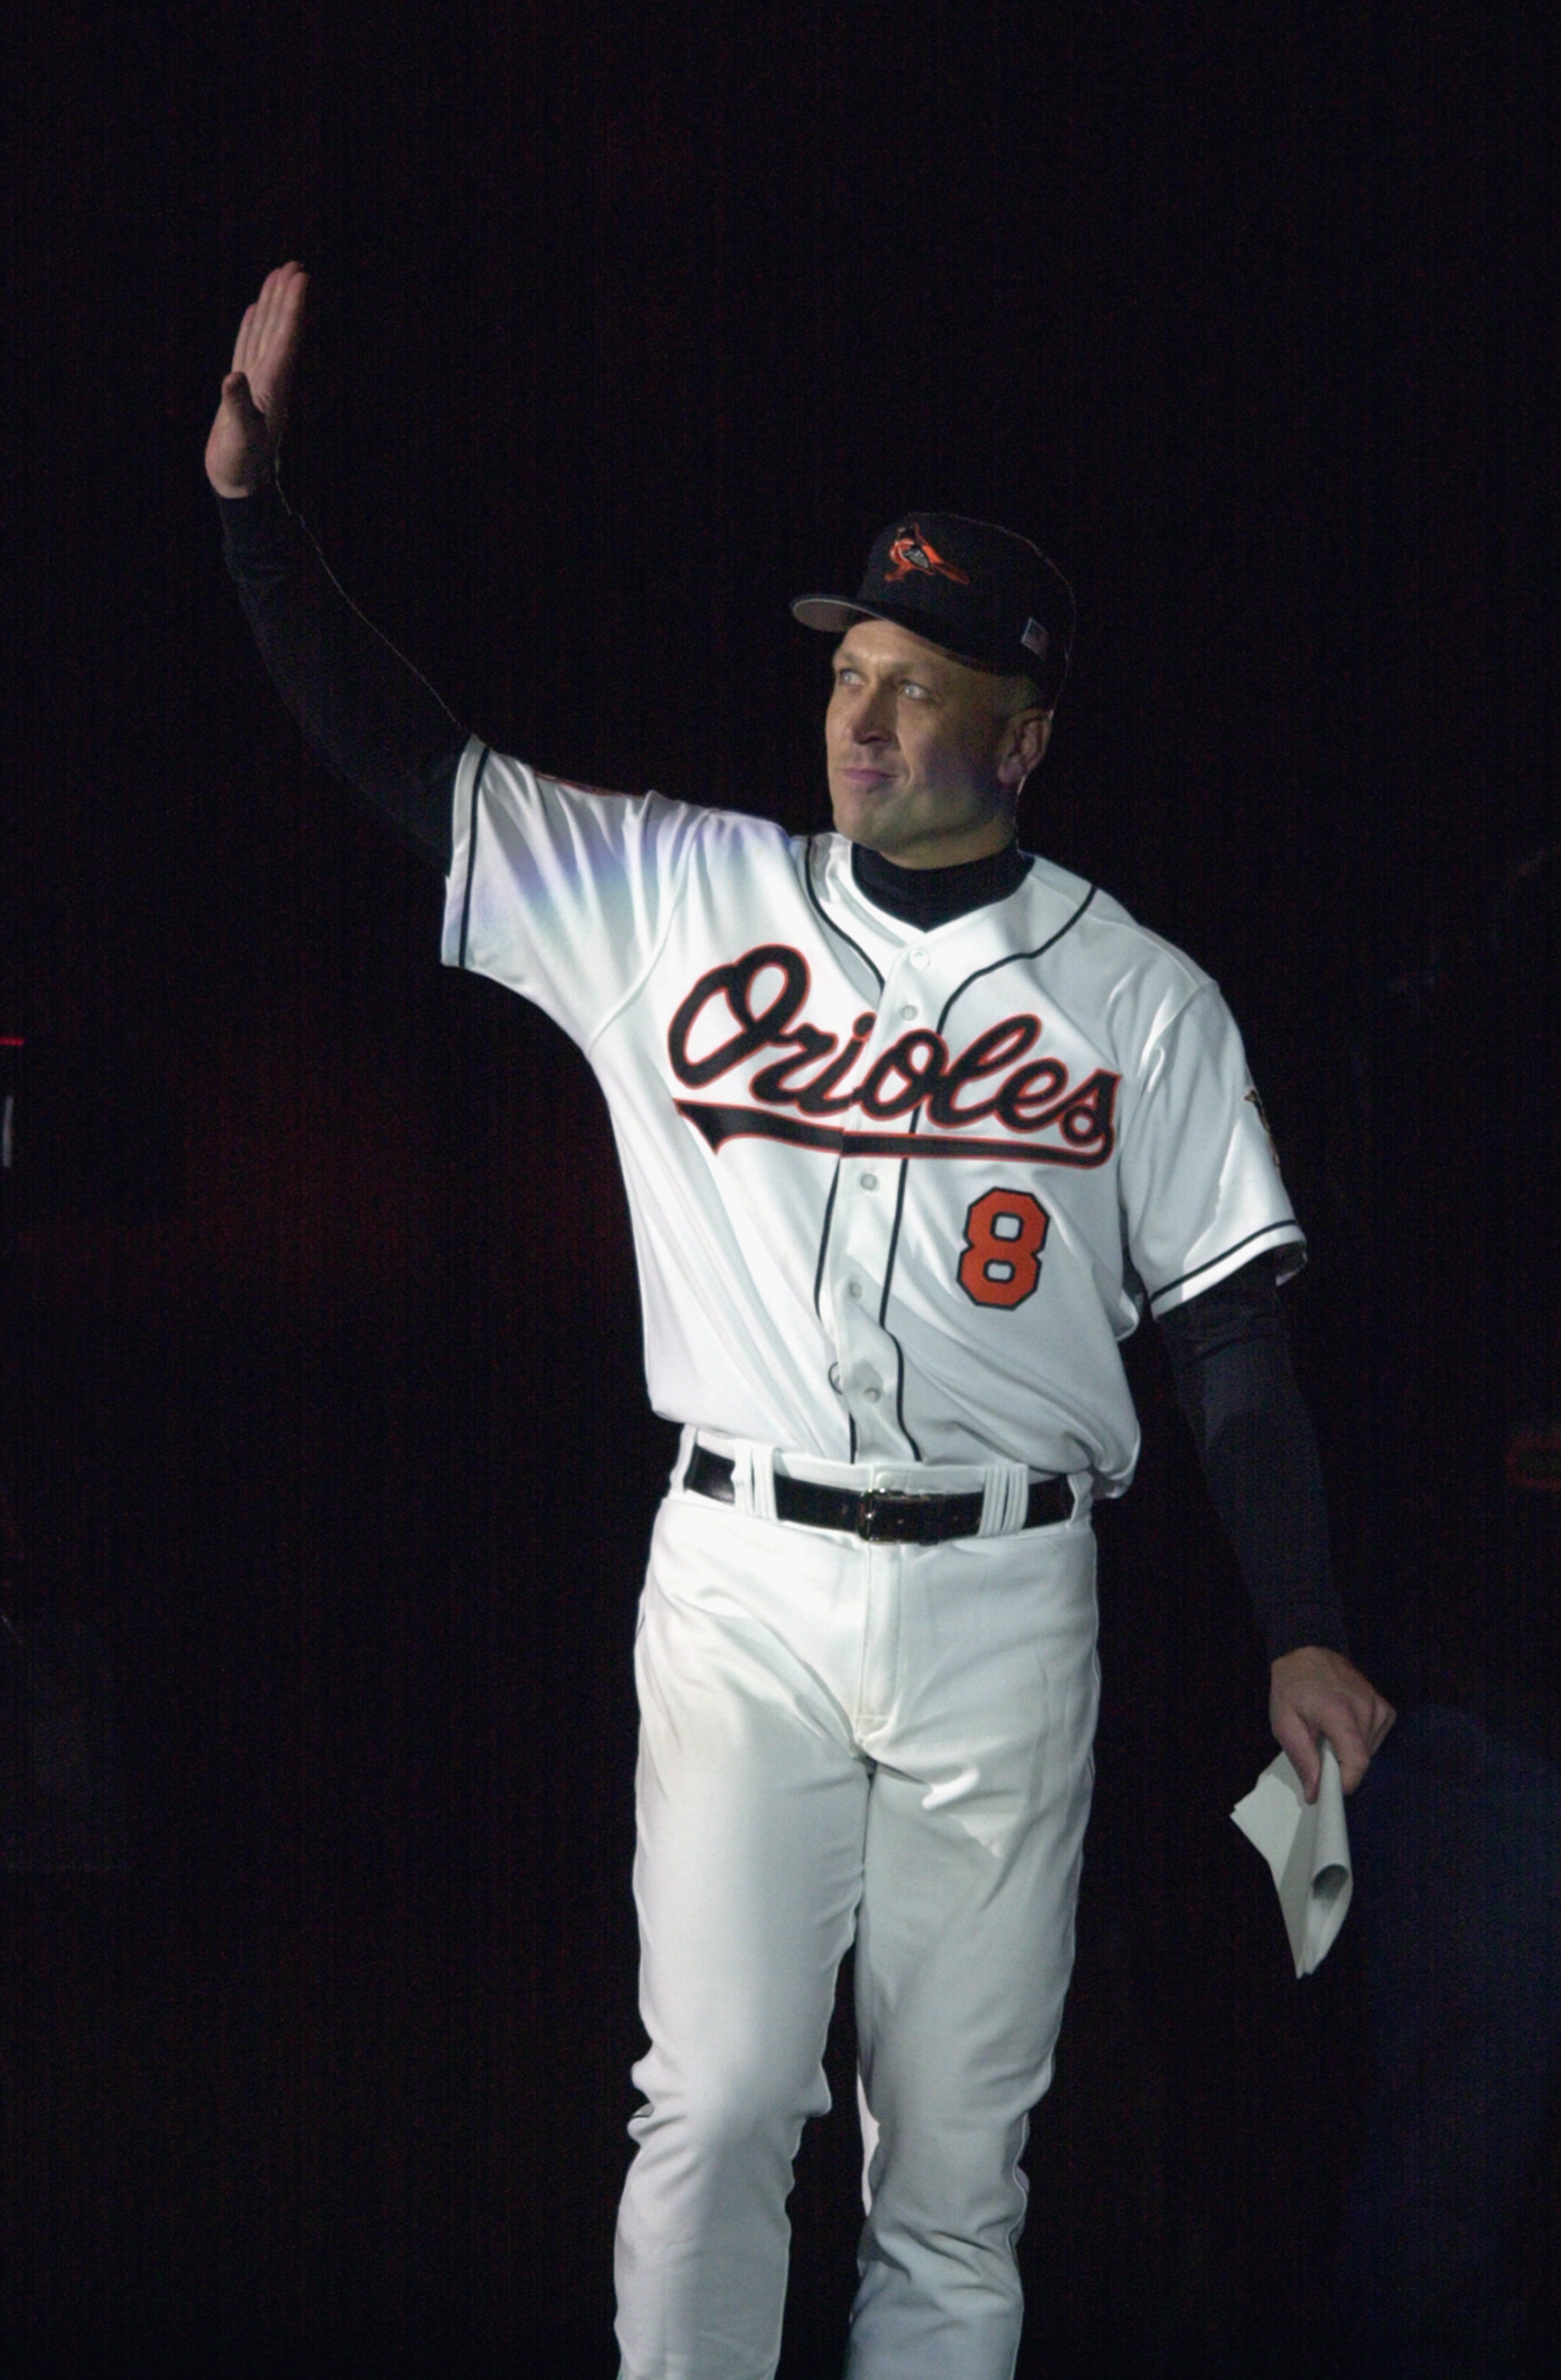 BALTIMORE - OCTOBER 6:  Cal Ripken Jr. #8 of the Baltimore Orioles waves to the crowd, during the October 6, 2001 ceremony to honor Ripken's 3001st and final game of his career. After the ceremony, the Baltimore Orioles would lose to the Boston Red Sox, 2